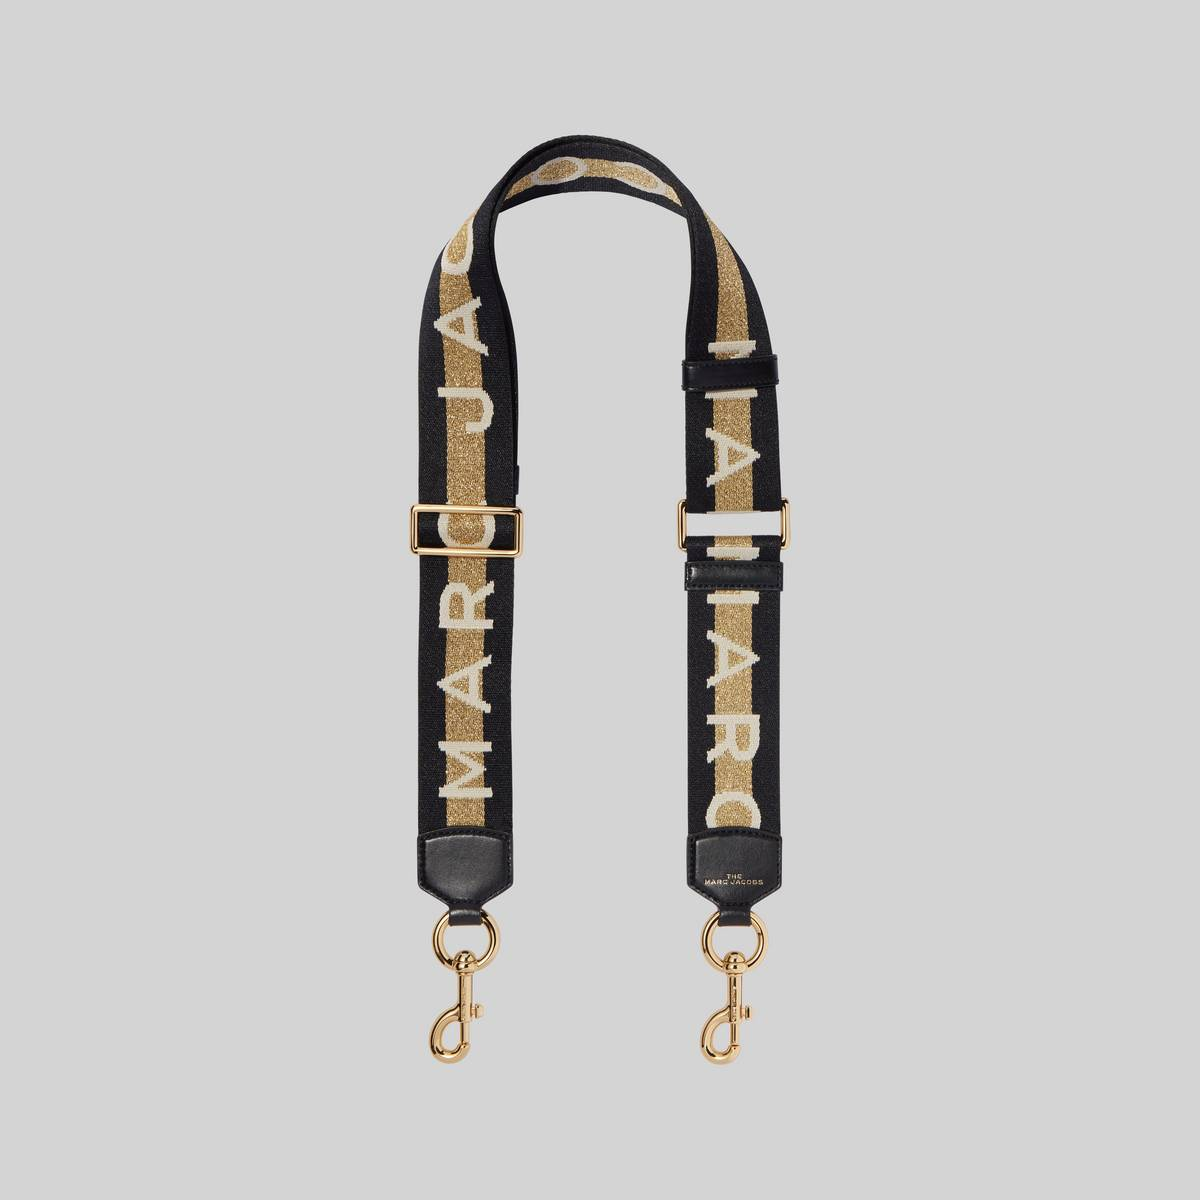 Adjustable webbing strap with our logo. | MARC JACOBS Women\\'s The Logo Webbing Strap in Gold Multi